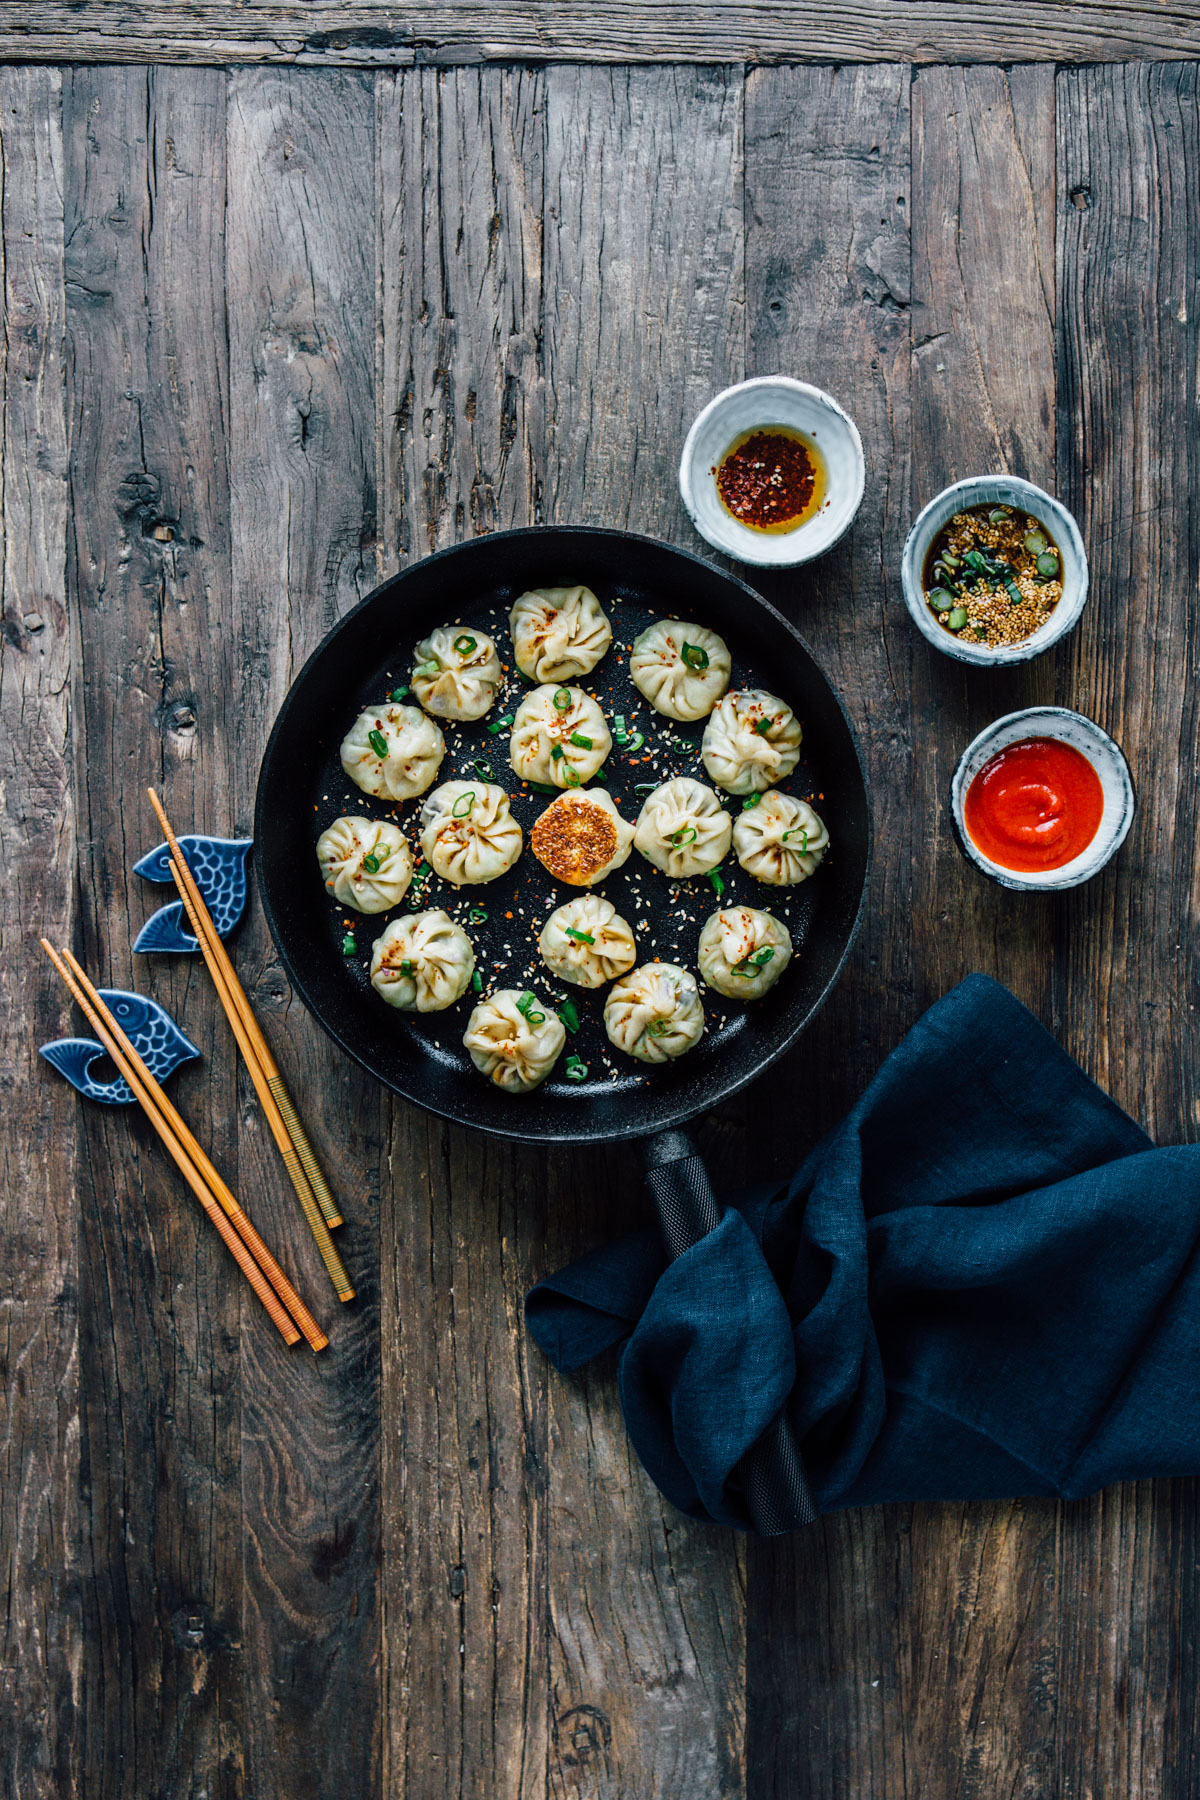 Homemade Vegan Dumplings - by Madeline Lu - @lumadeline